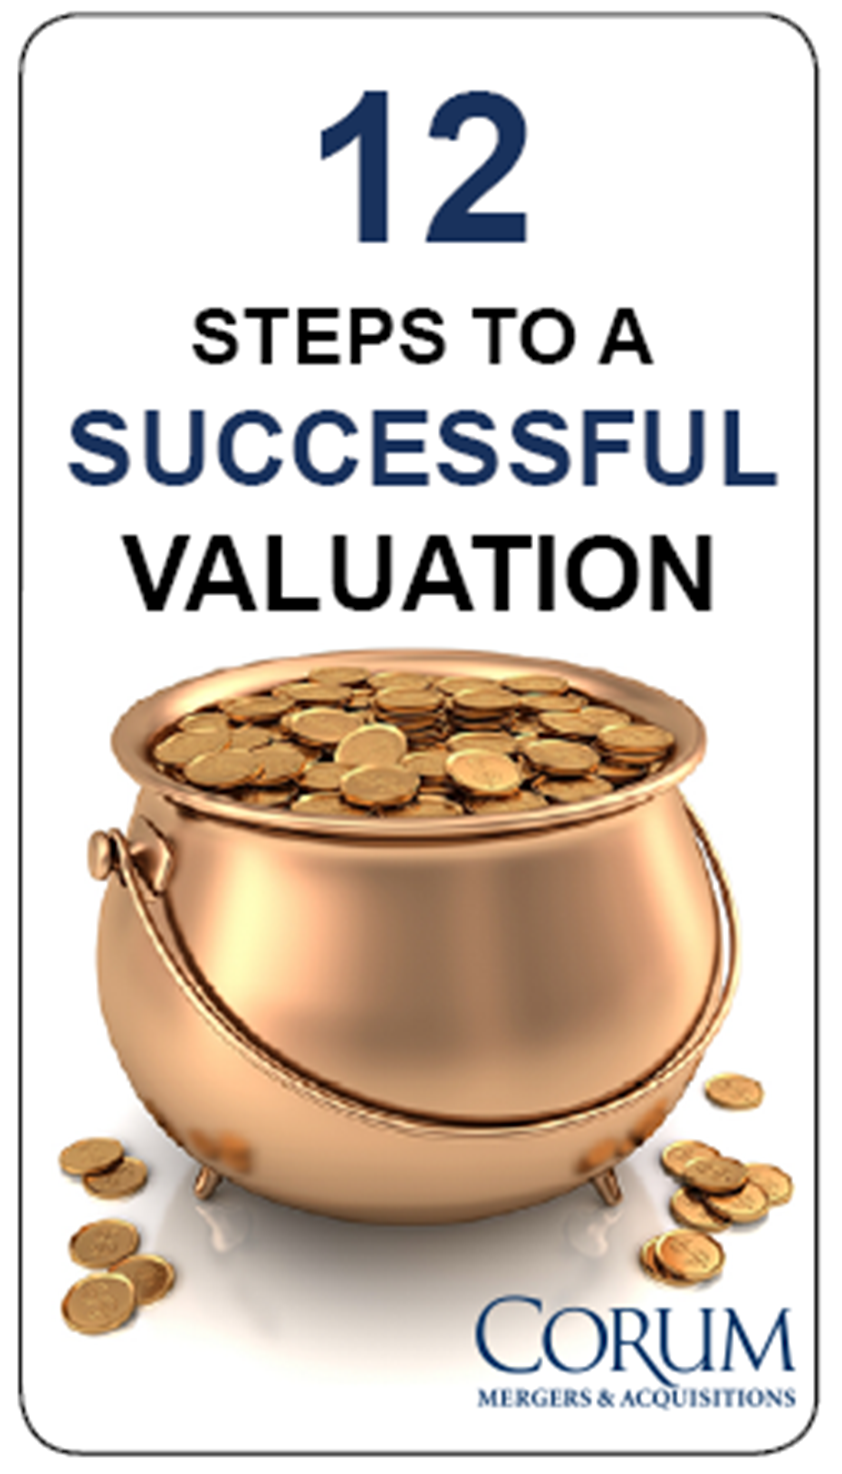 Tech M&A Monthly: 12 Tips for a Successful Valuation #3 & 4